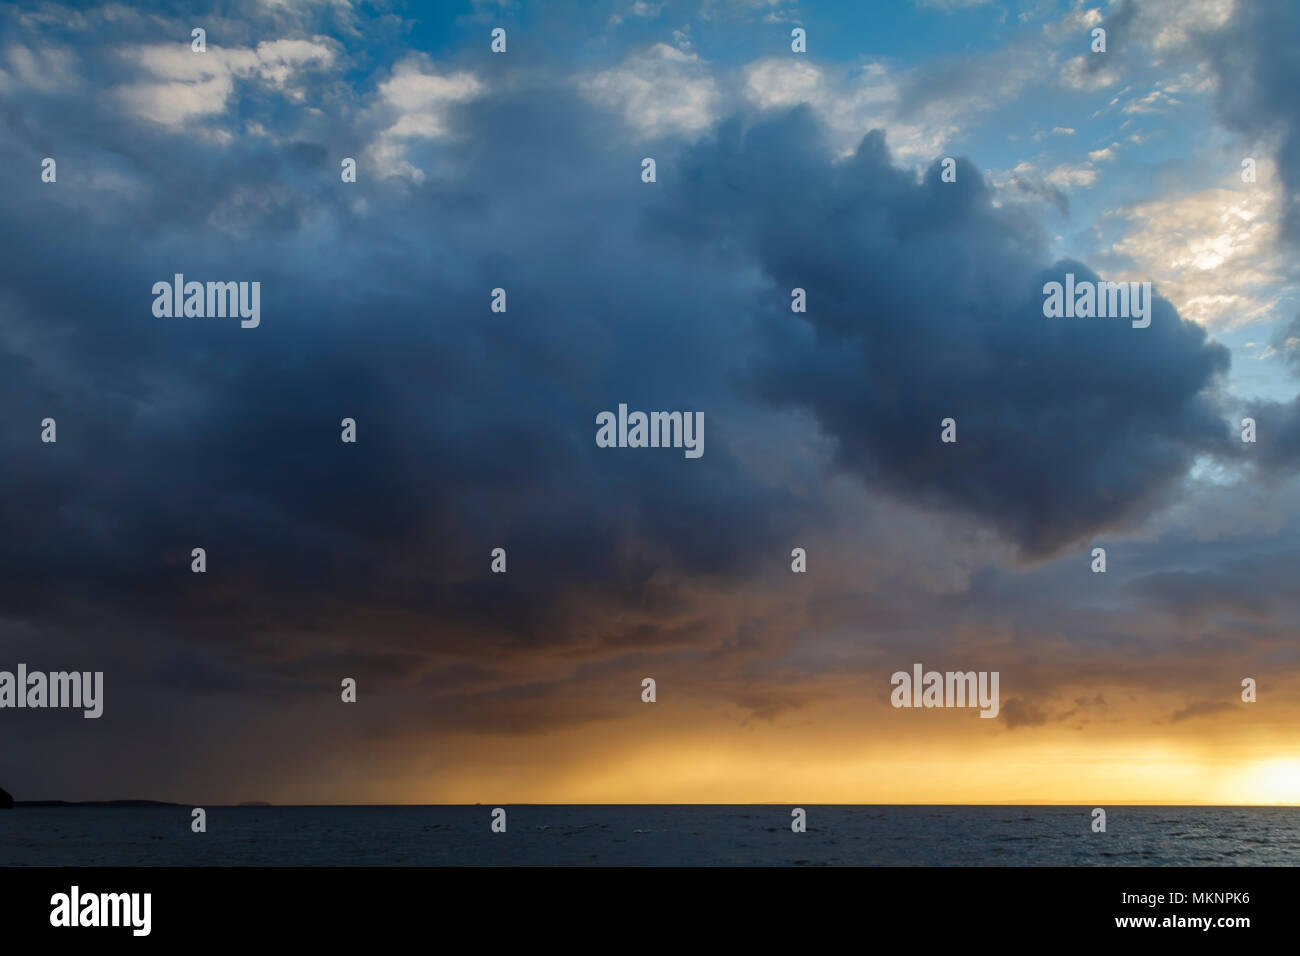 Cloud Formation sunset - Stock Image